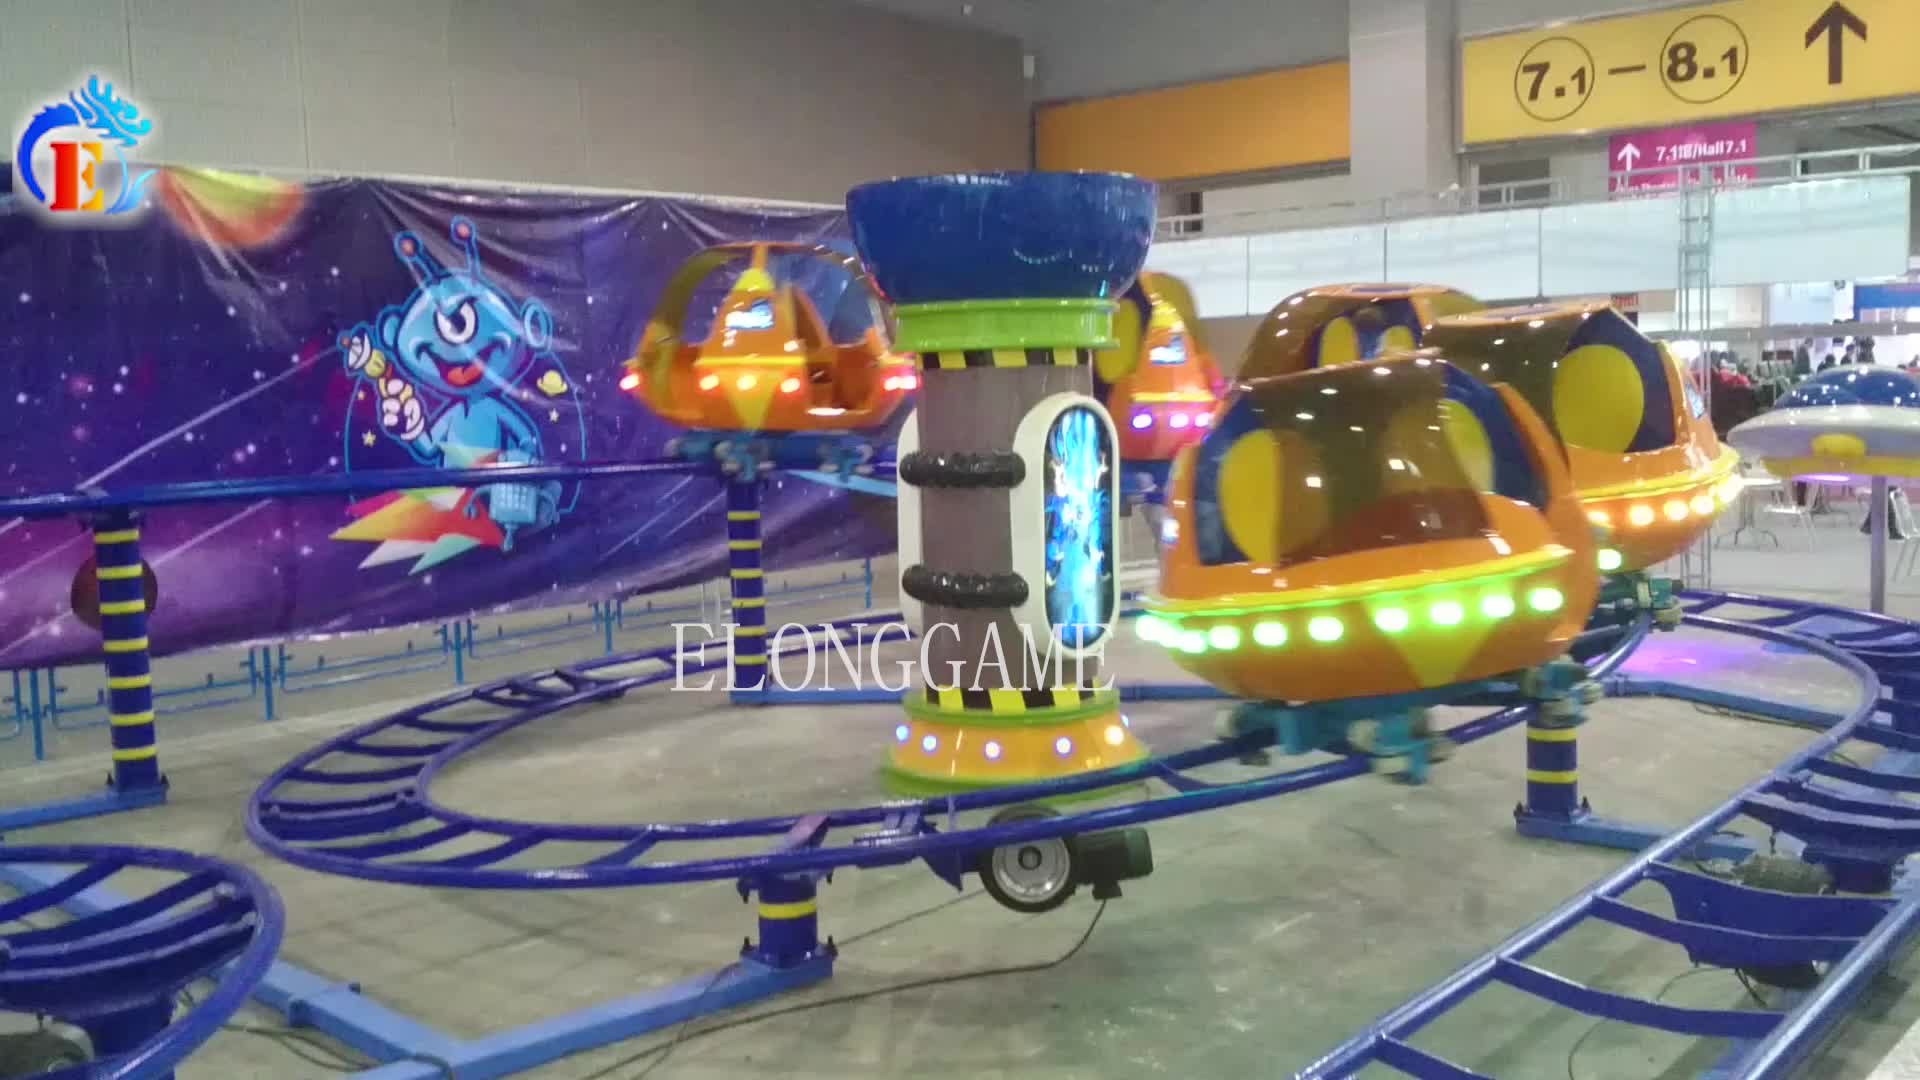 New arrival! 3D virtual roller coaster with 360 degree rotate